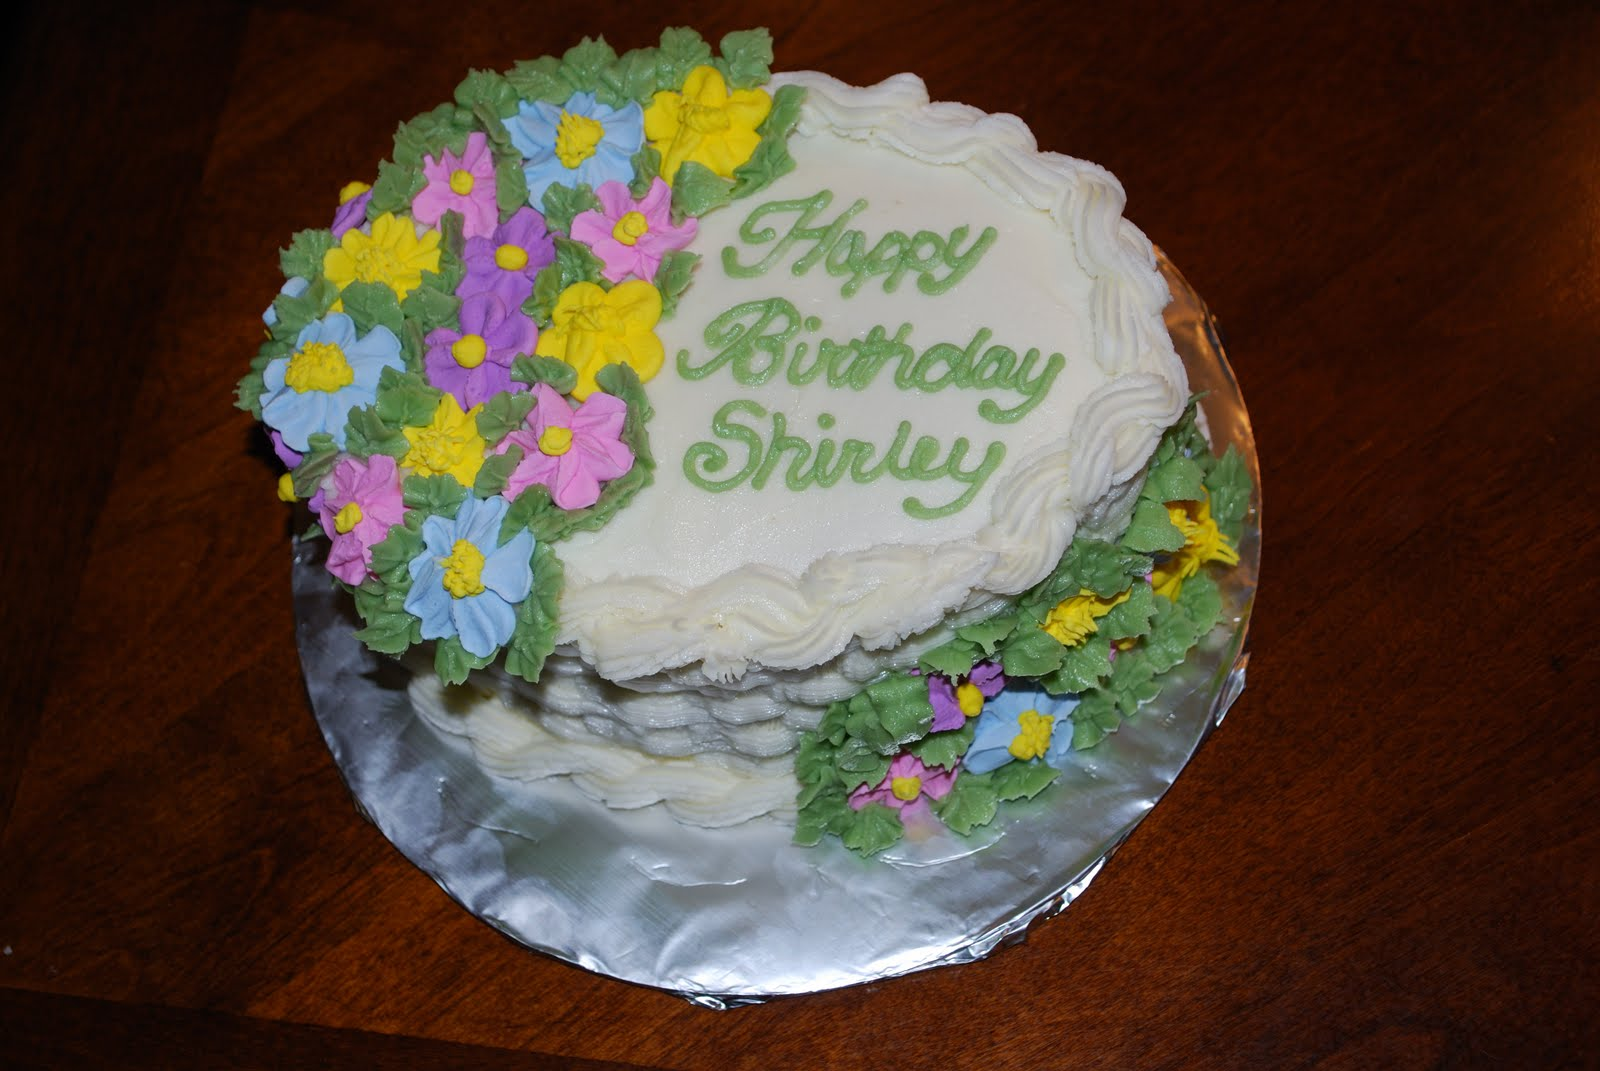 Images Of Birthday Cake With Bouquets : Kristy s Kreations: Happy Birthday Spring Flowers Cake